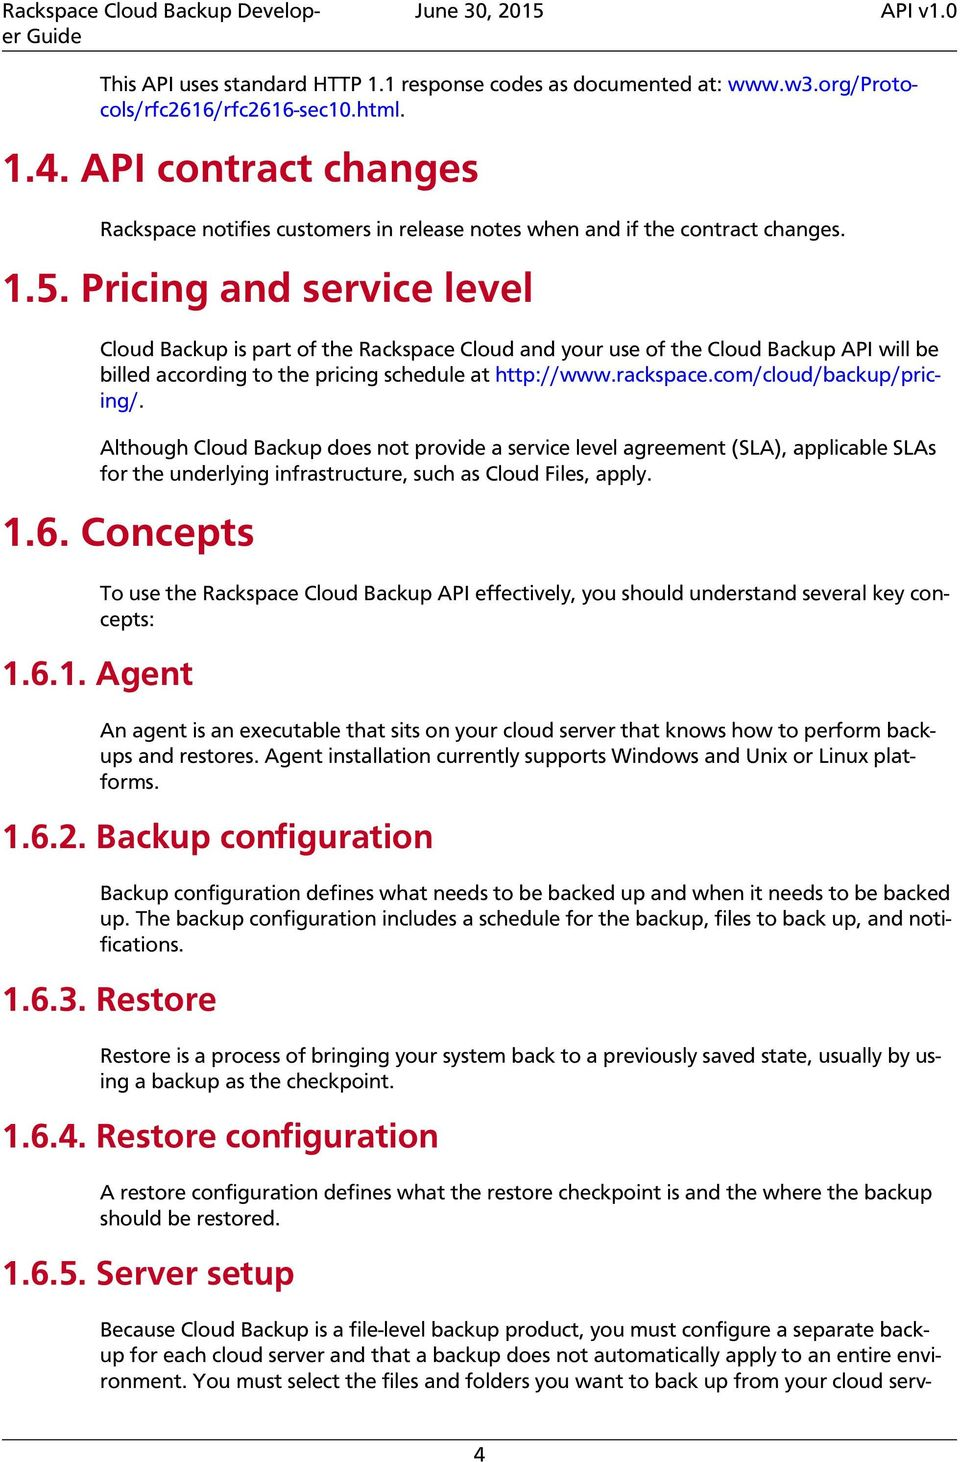 Pricing and service level Cloud Backup is part of the Rackspace Cloud and your use of the Cloud Backup API will be billed according to the pricing schedule at http://www.rackspace.